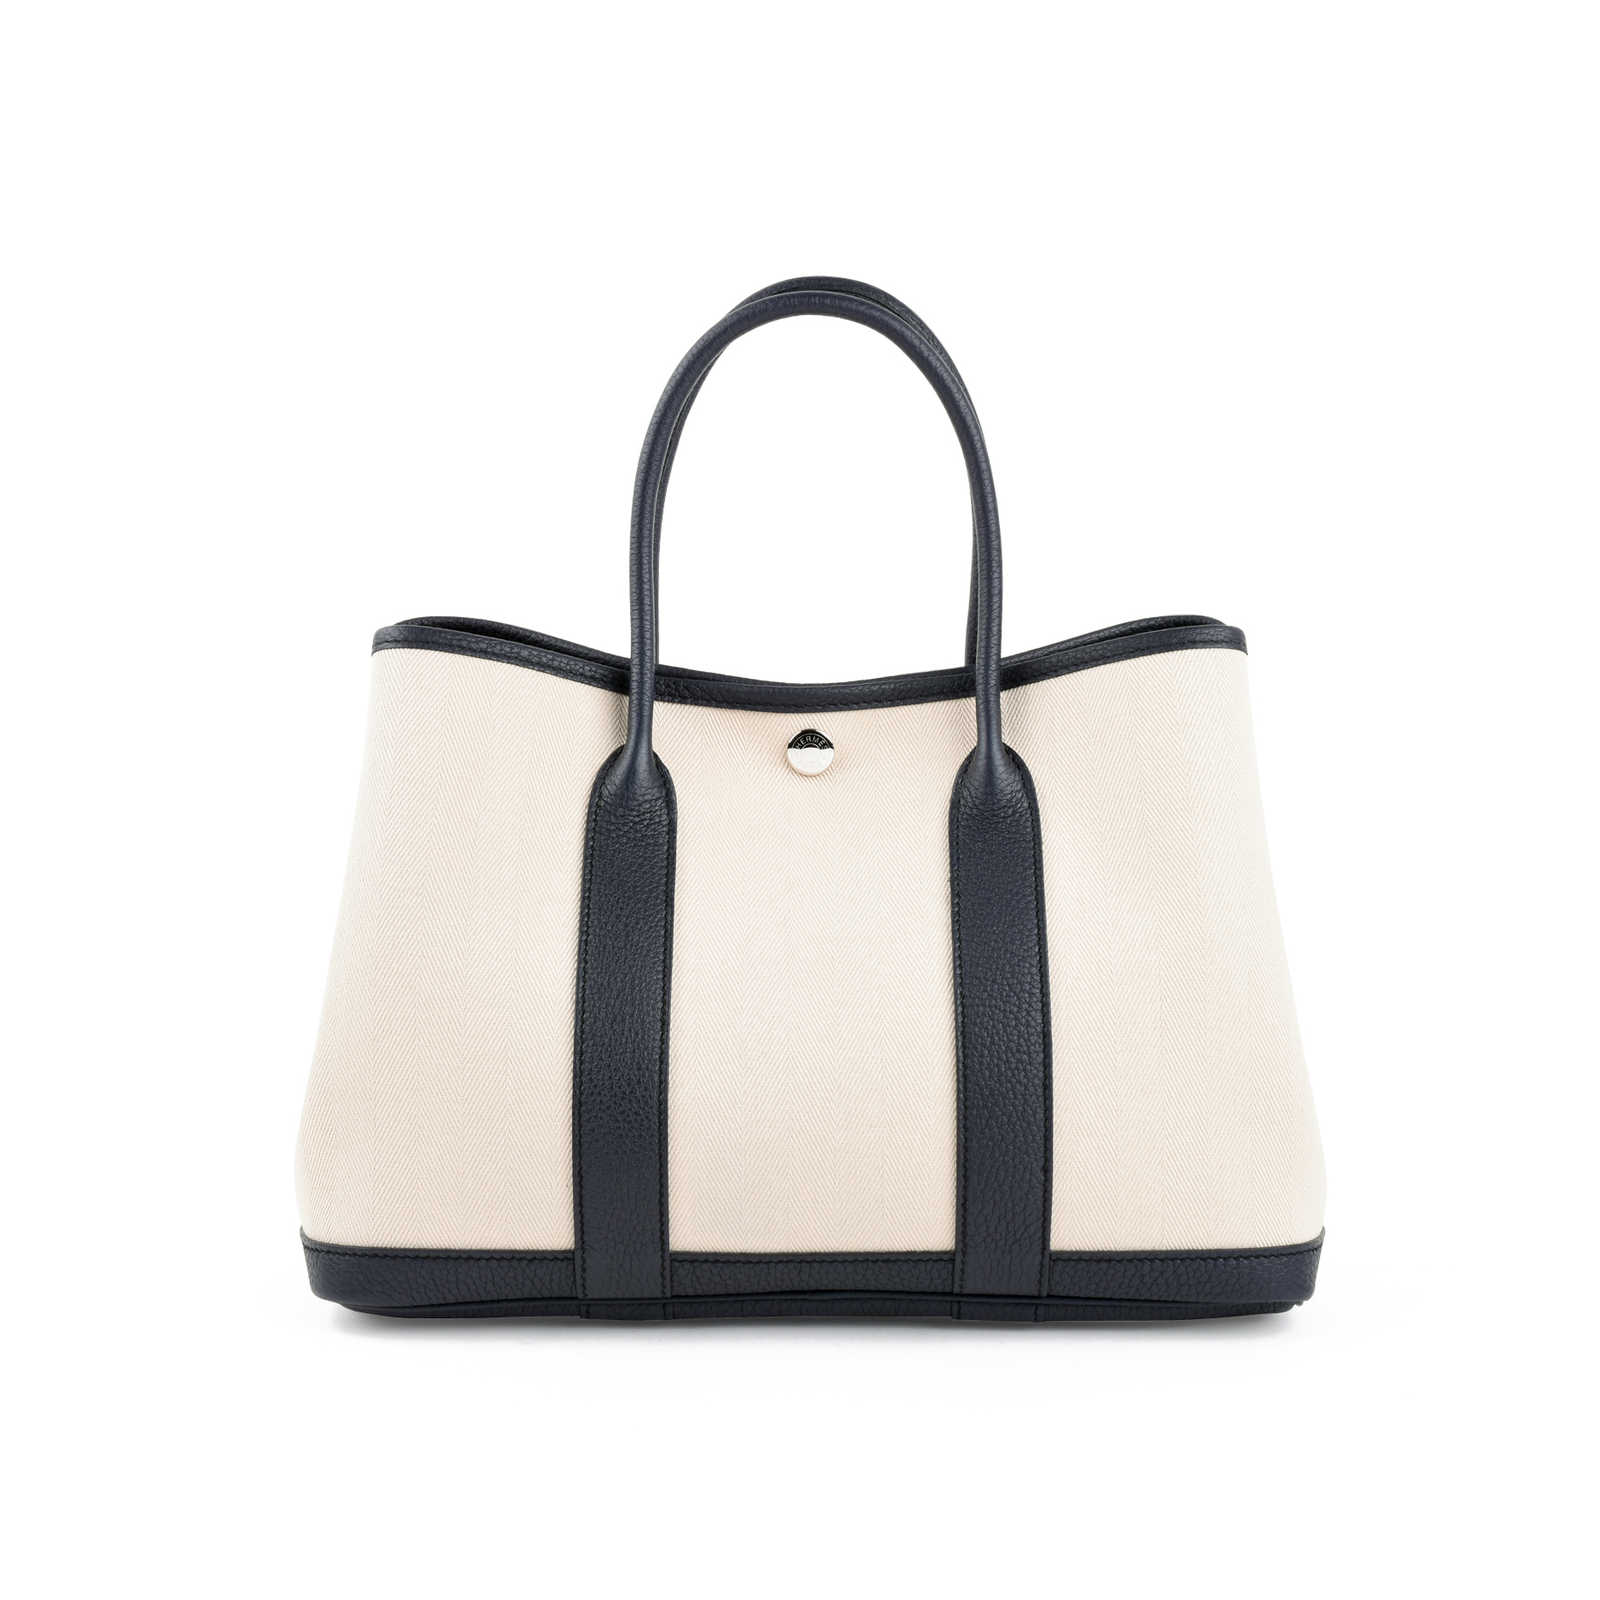 Authentic Second Hand Hermes Garden Party 30 Bag Pss 291 00014